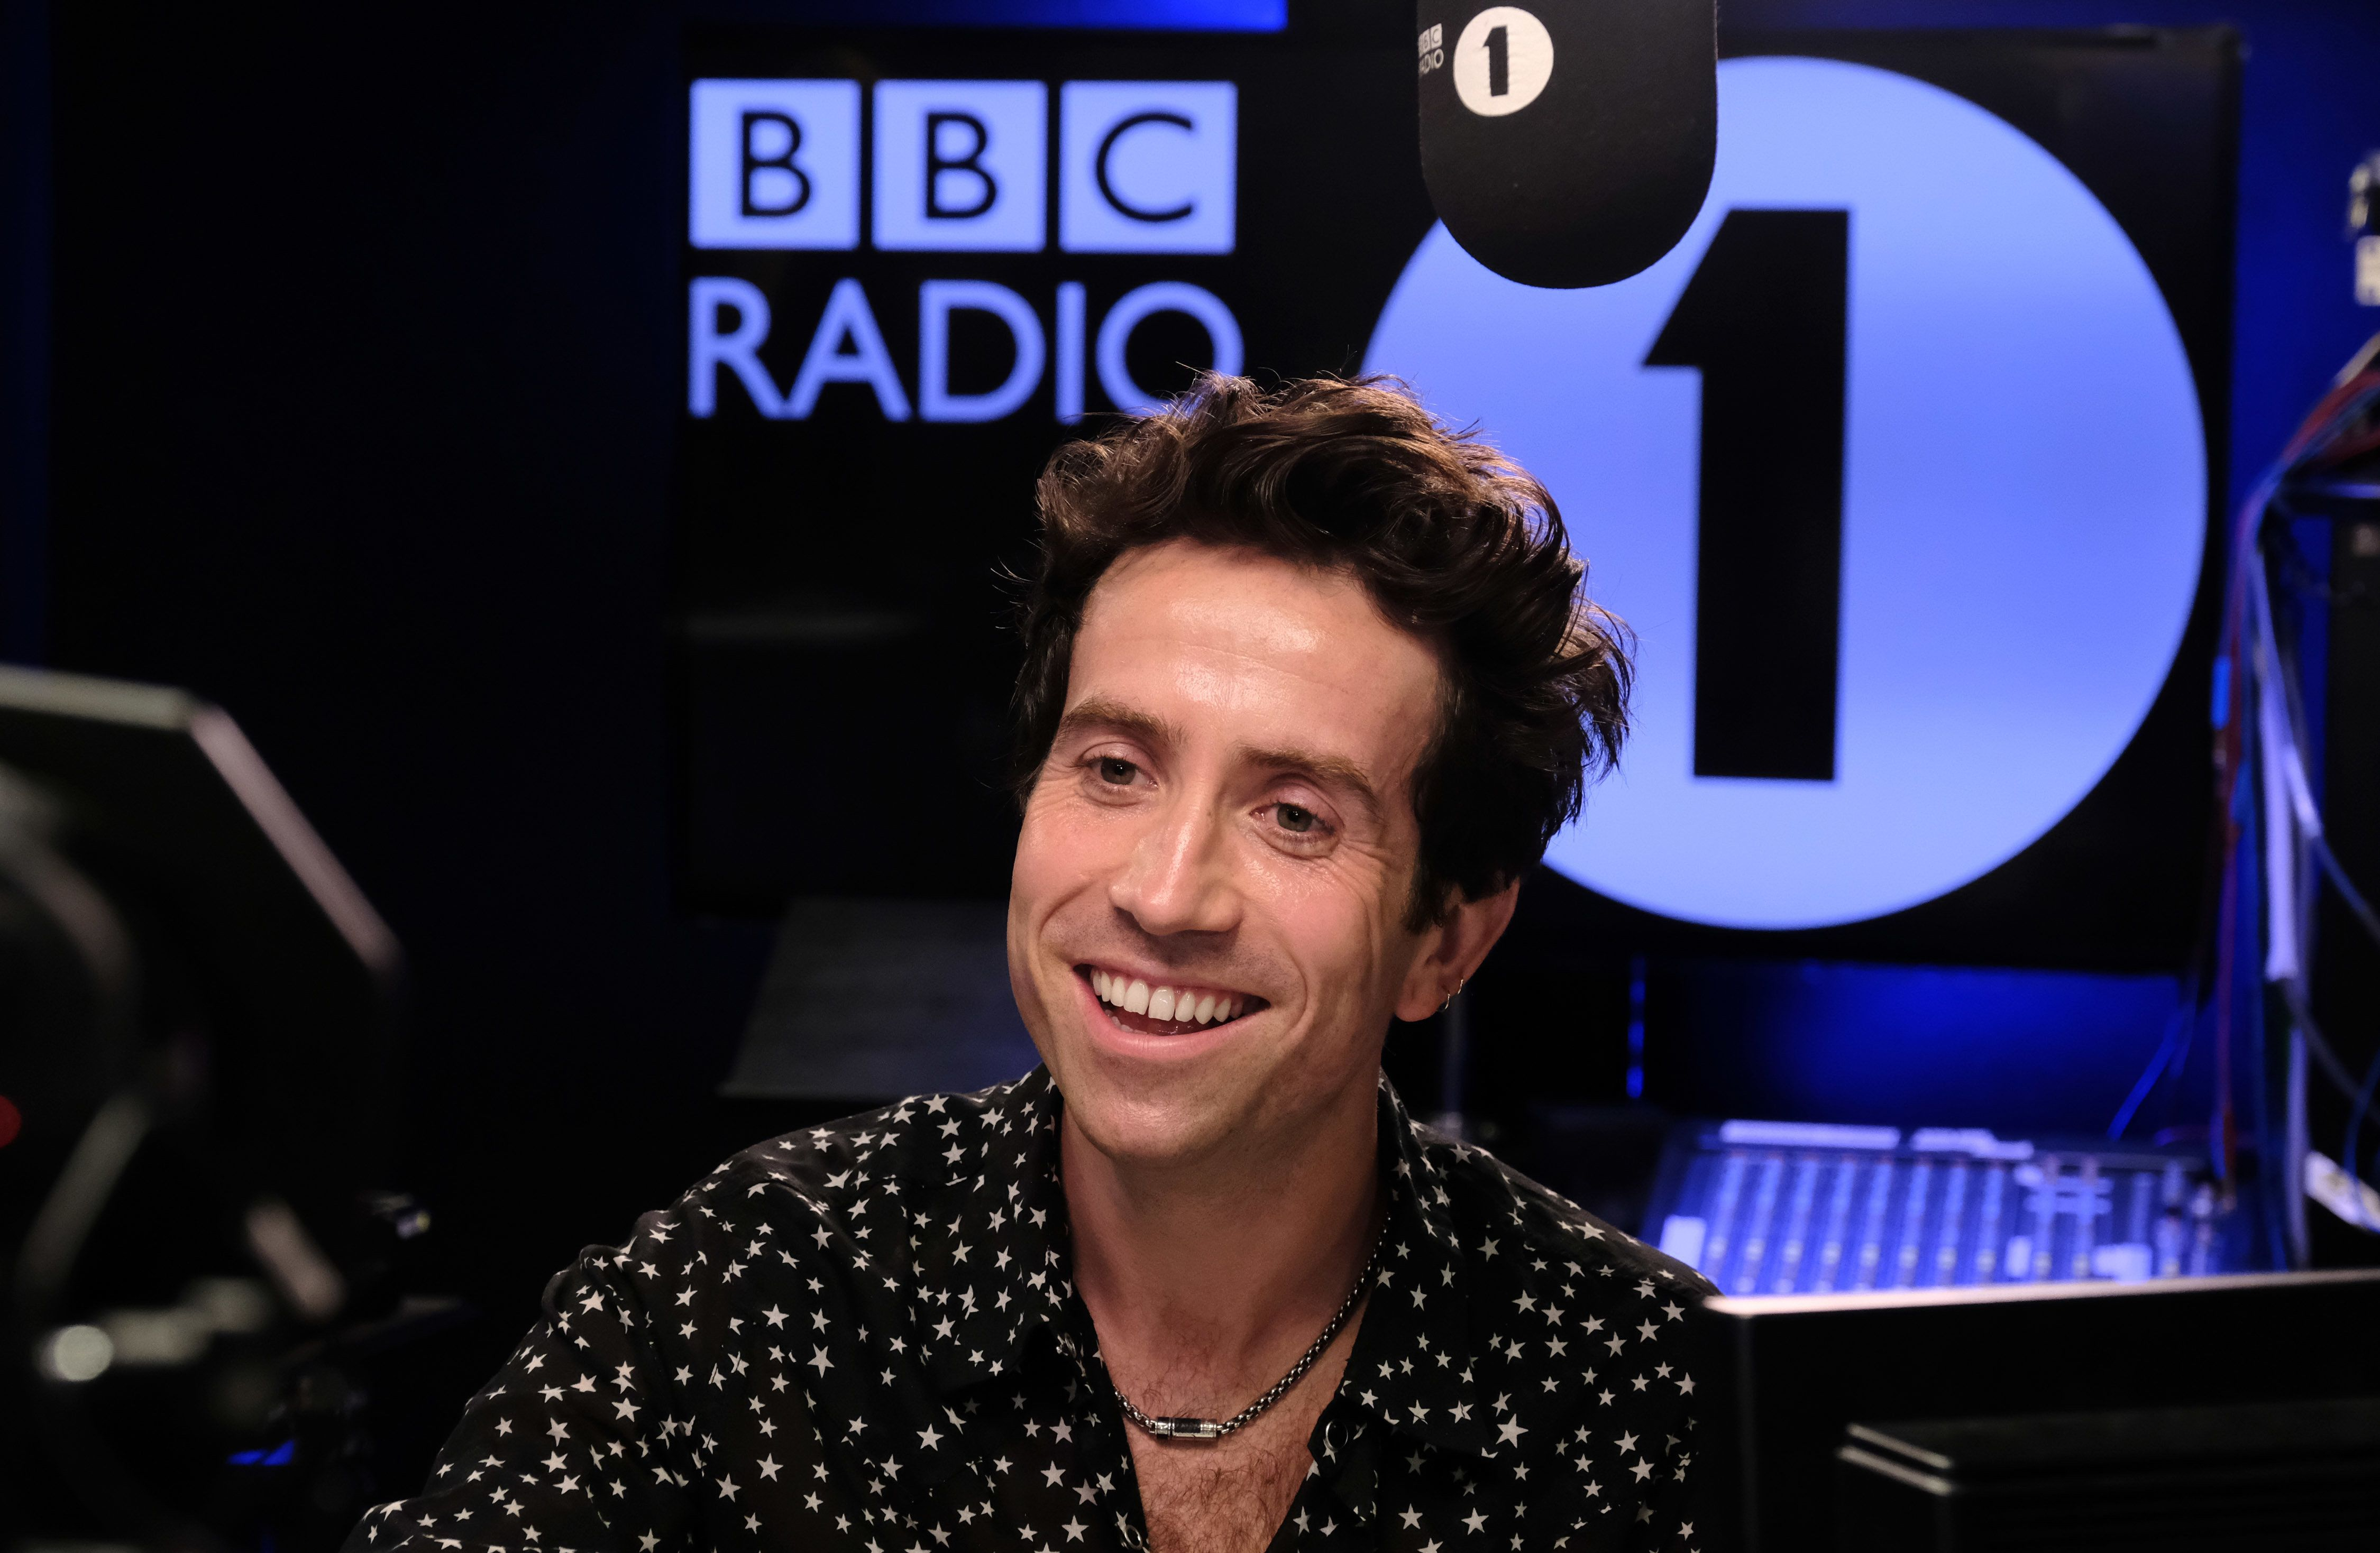 Grimmy in the studio on his last